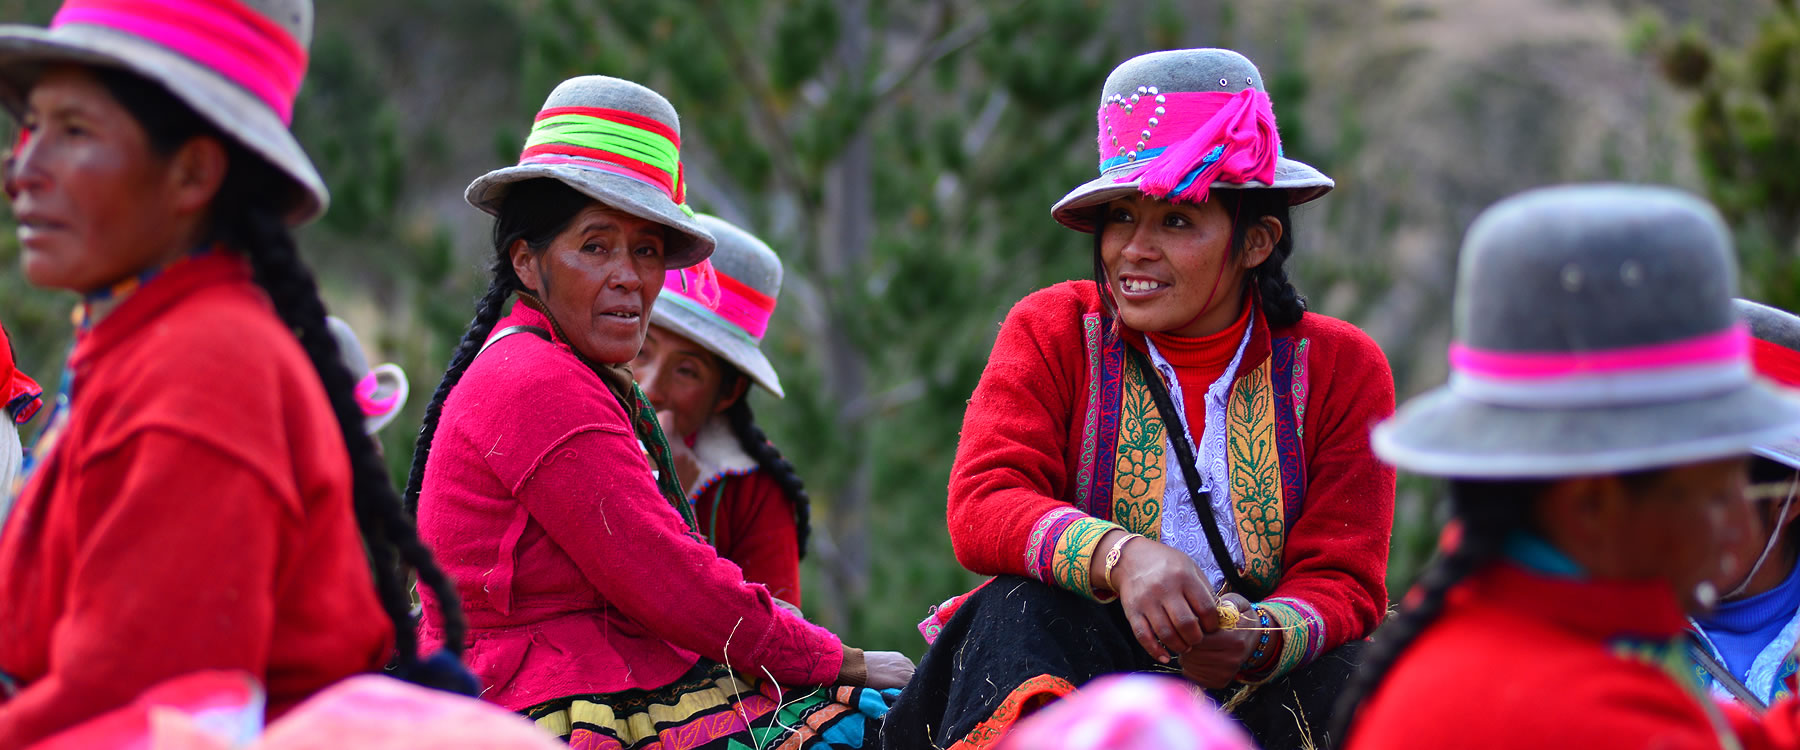 Peruvian mountain villagers dressed in bright clothing